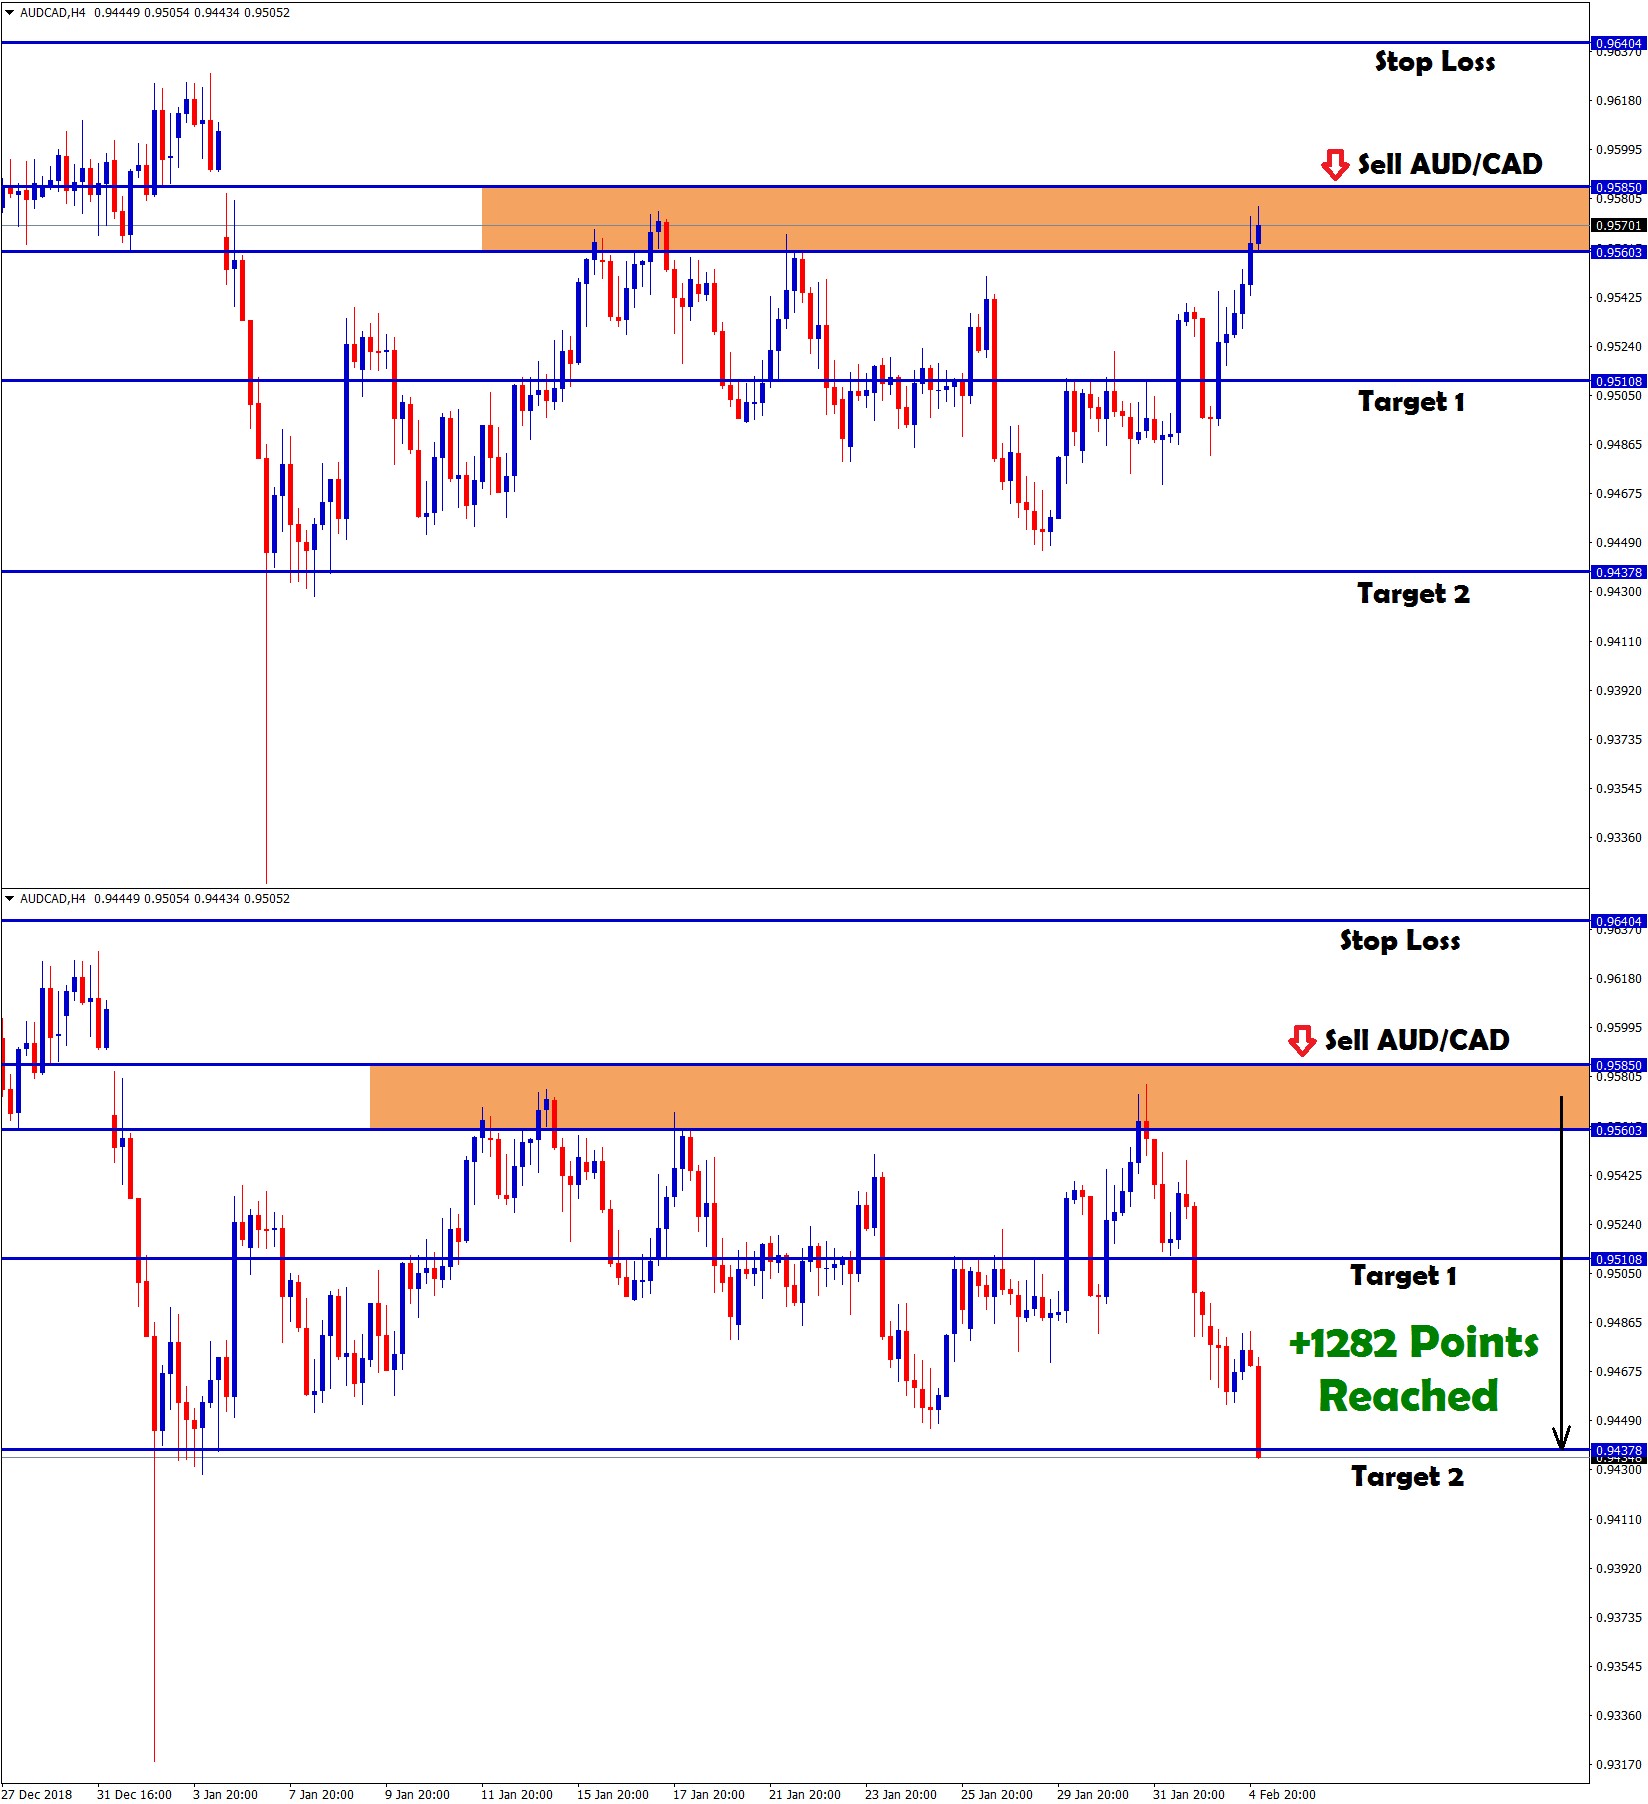 hits target 2 with +1282 points profit made in aud/cad sell signal